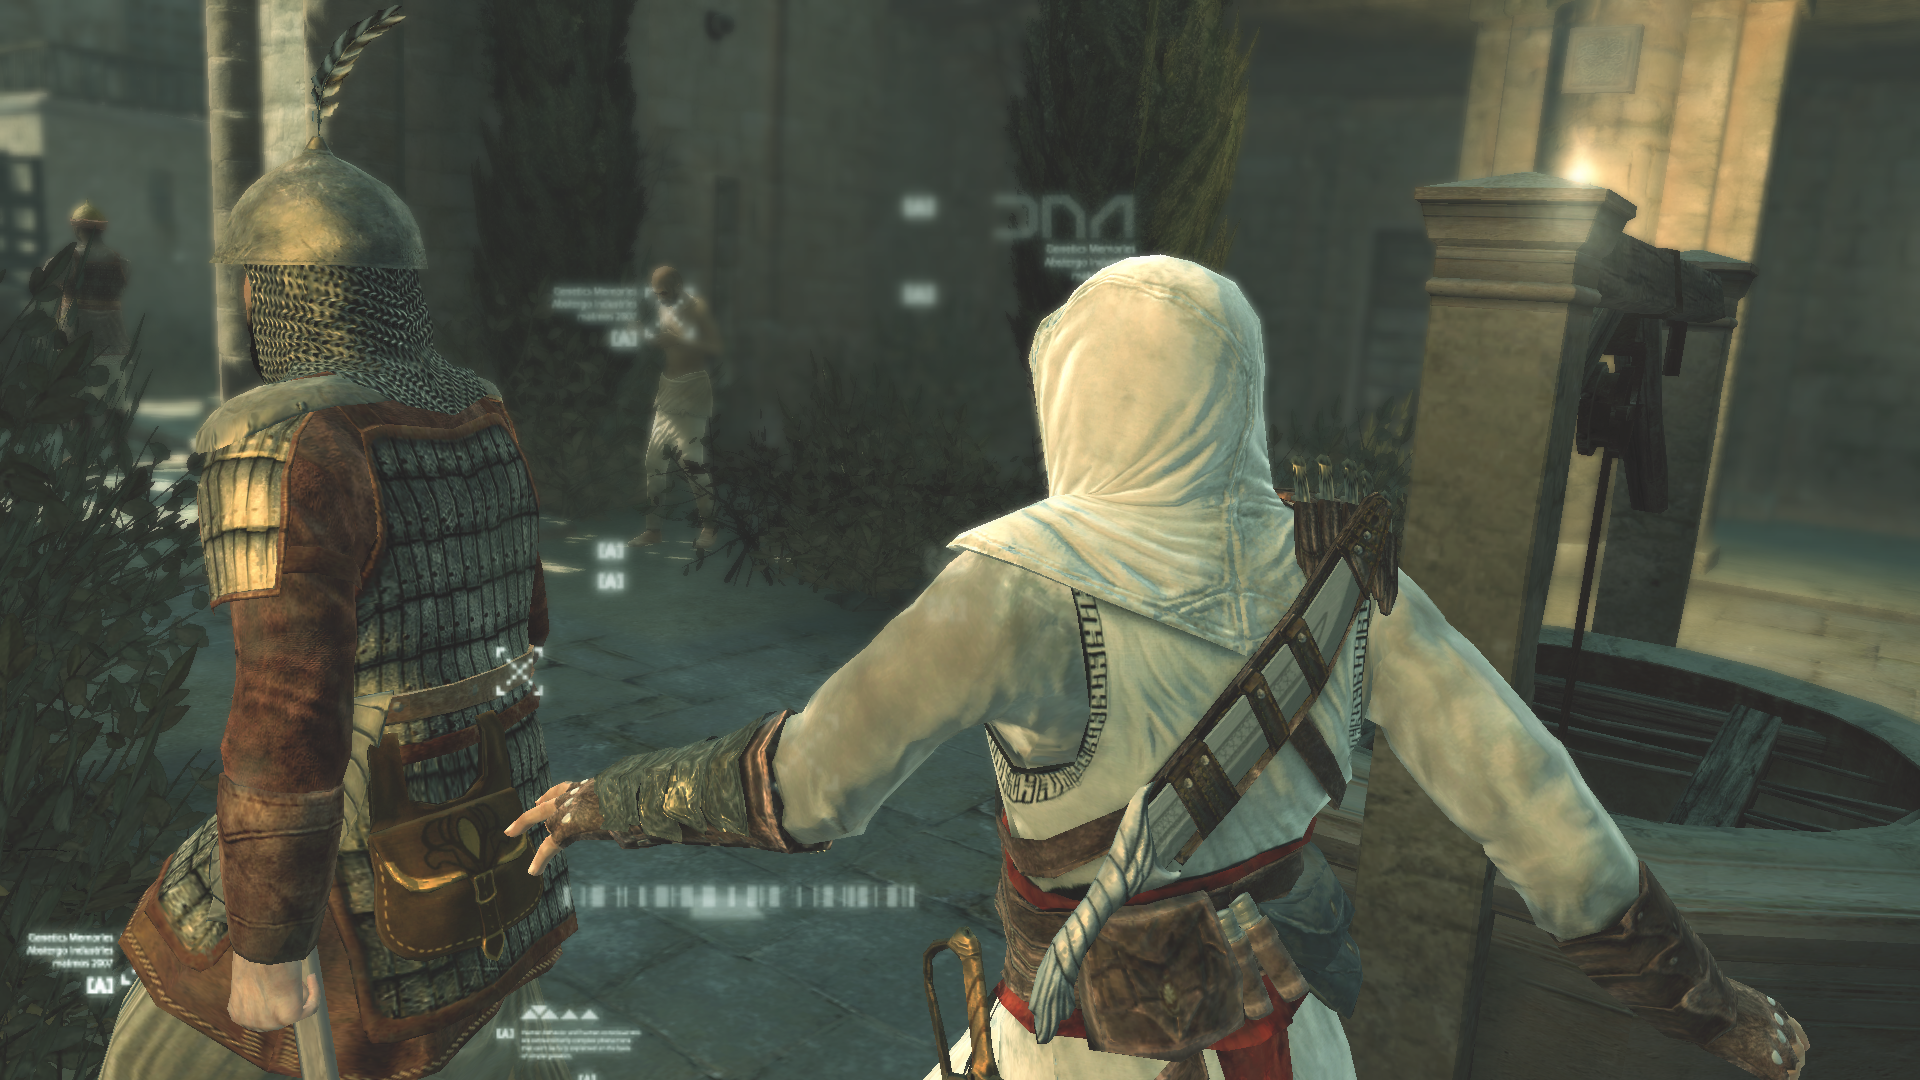 Pickpocketing assassins creed wiki fandom powered by wikia